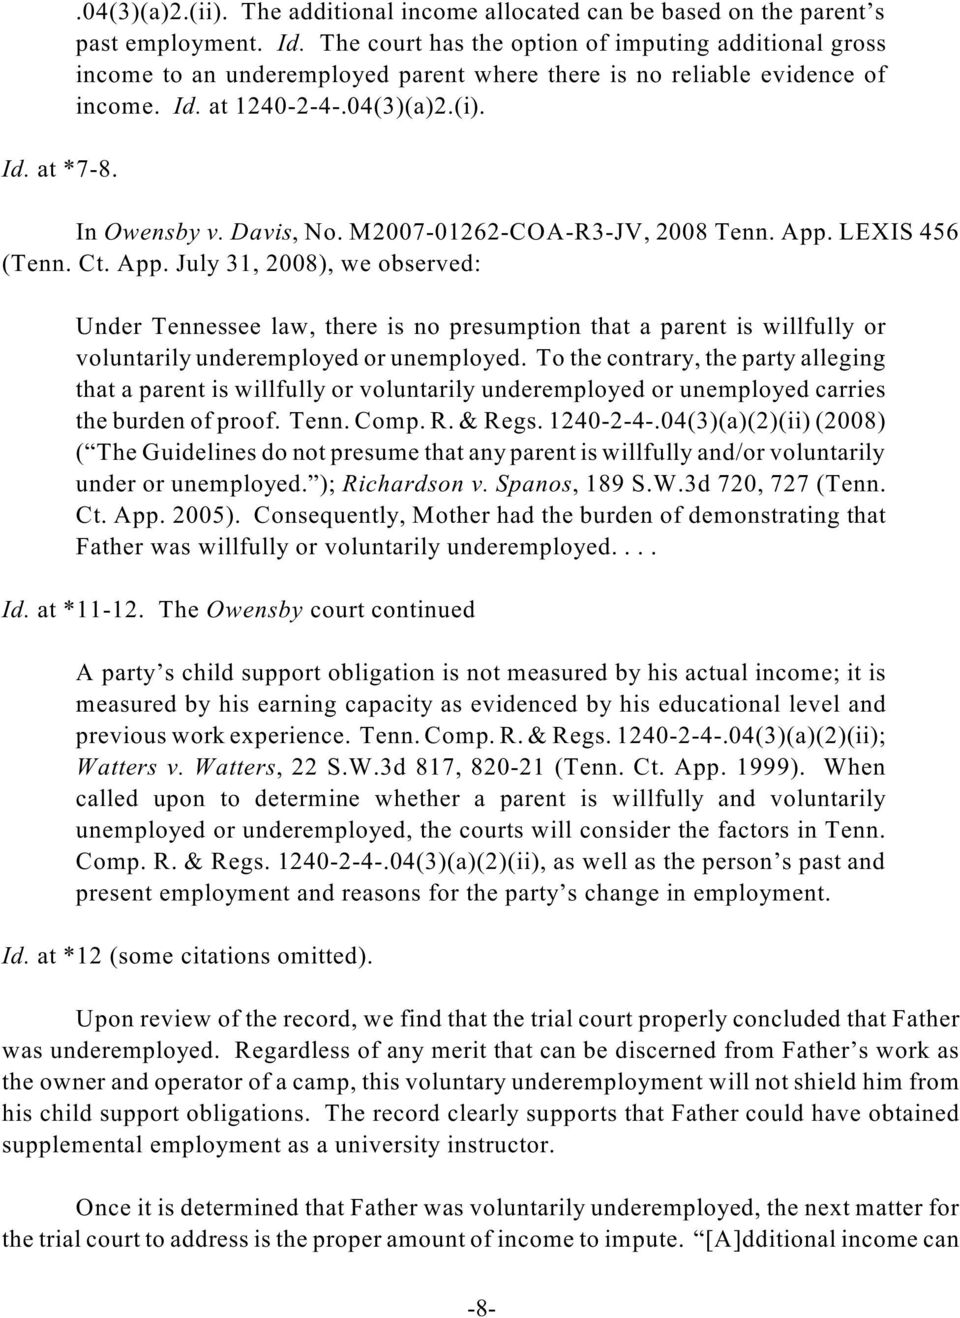 M2007-01262-COA-R3-JV, 2008 Tenn. App. LEXIS 456 (Tenn. Ct. App. July 31, 2008), we observed: Under Tennessee law, there is no presumption that a parent is willfully or voluntarily underemployed or unemployed.